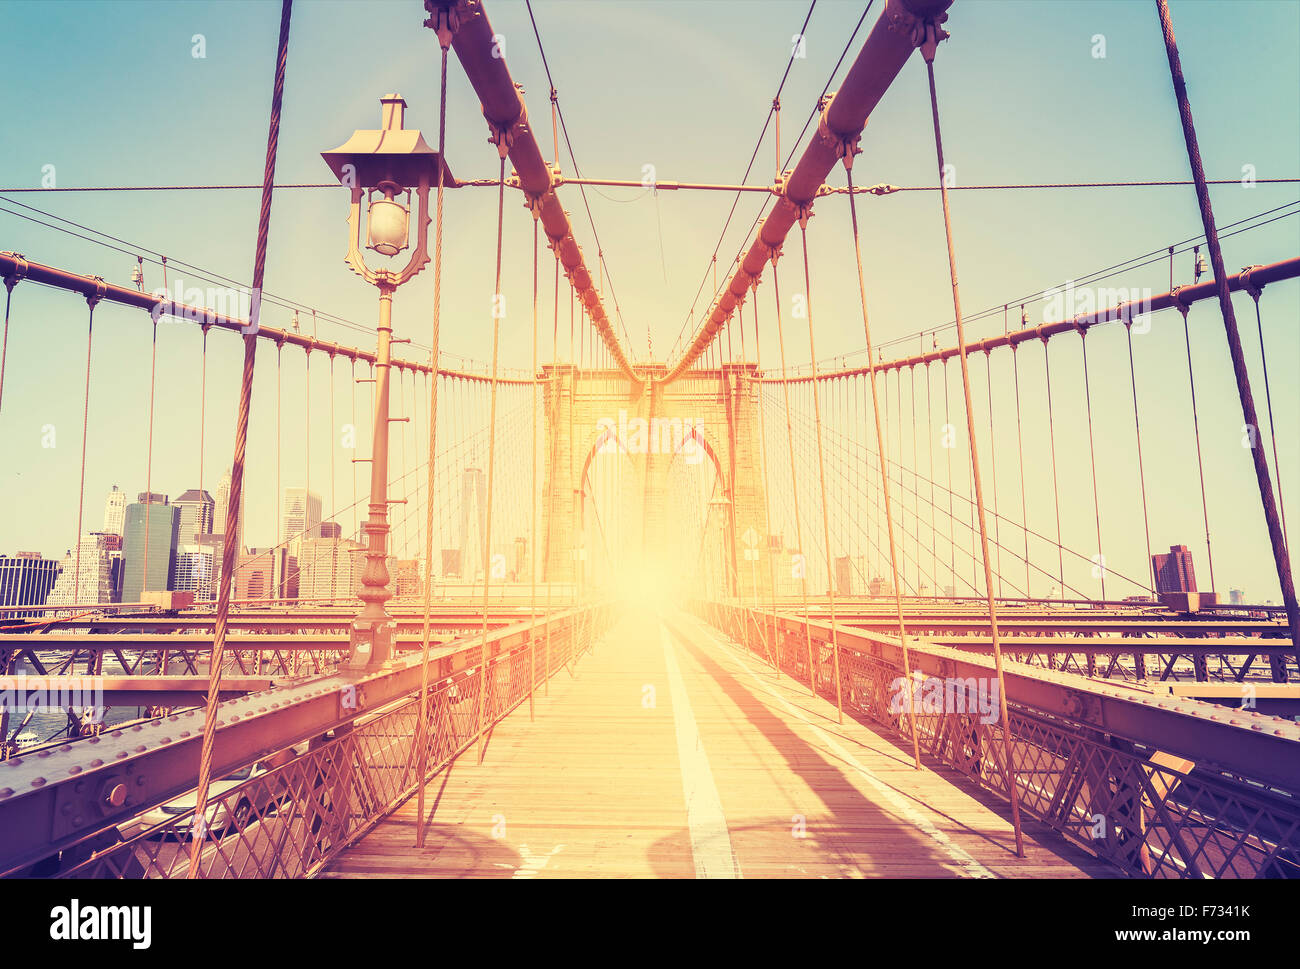 Vintage stylized picture of the Brooklyn Bridge in New York City, USA. - Stock Image